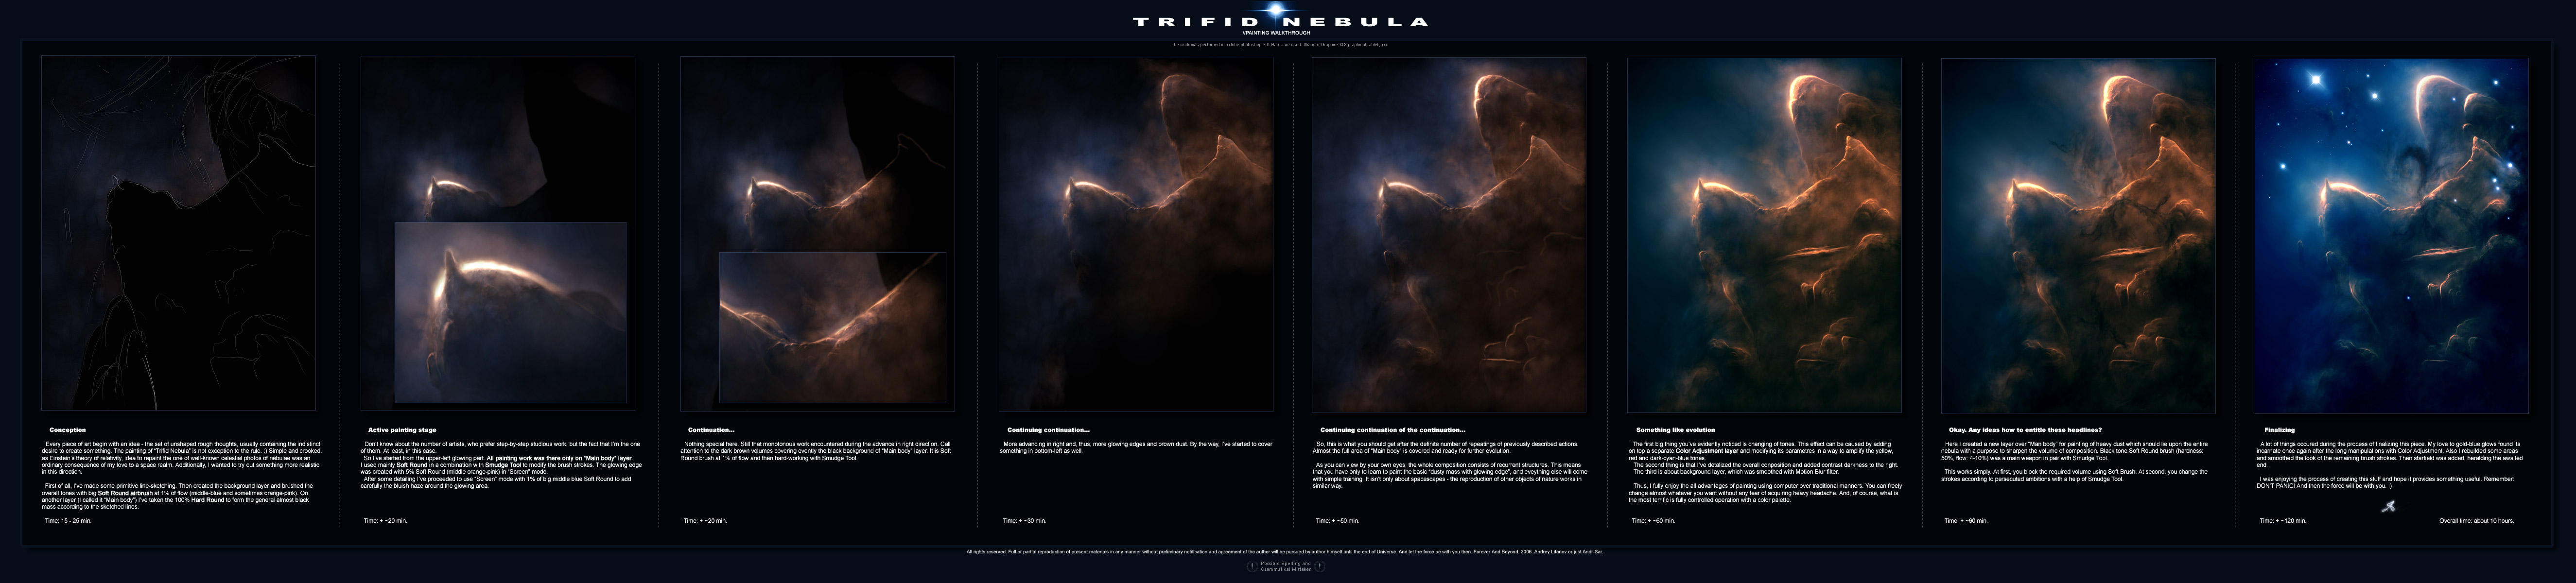 TRIFID NEBULA WALKTHROUGH by Andr-Sar